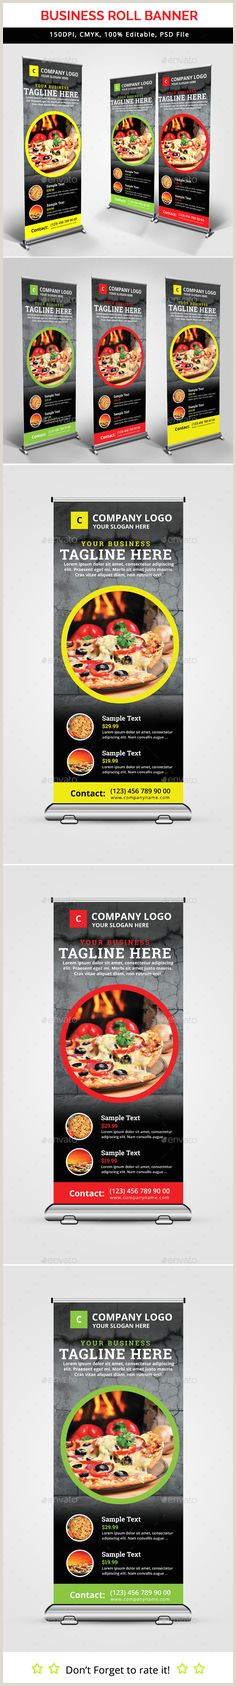 Banner Stand Instructions 30 Best Banner Stand Design Images In 2020